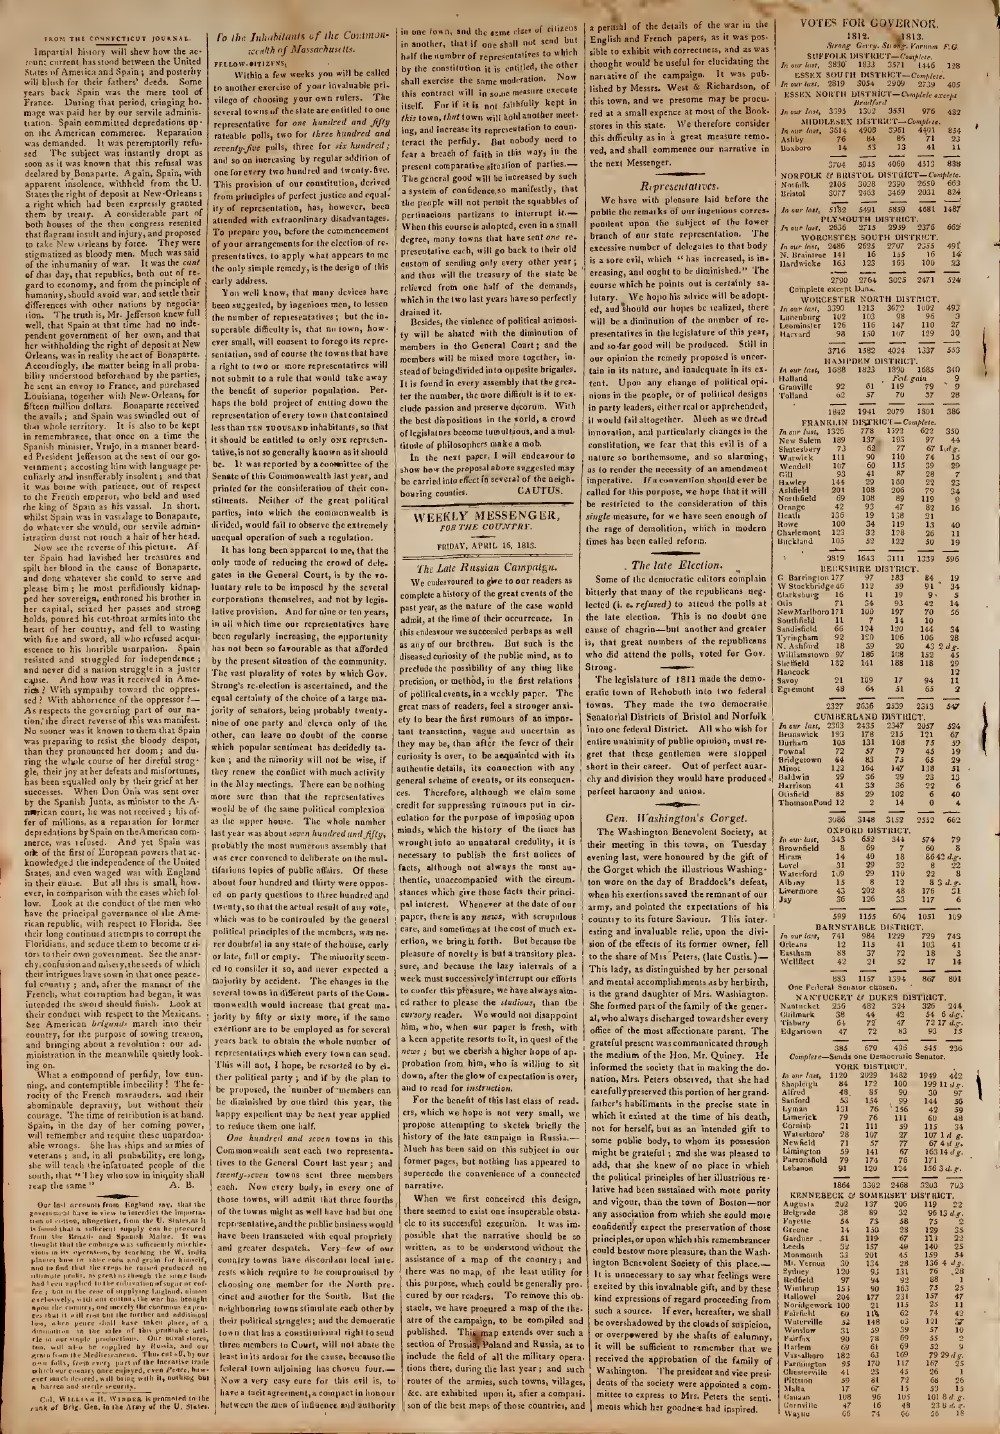 The Weekly Messenger, 16 April 1813